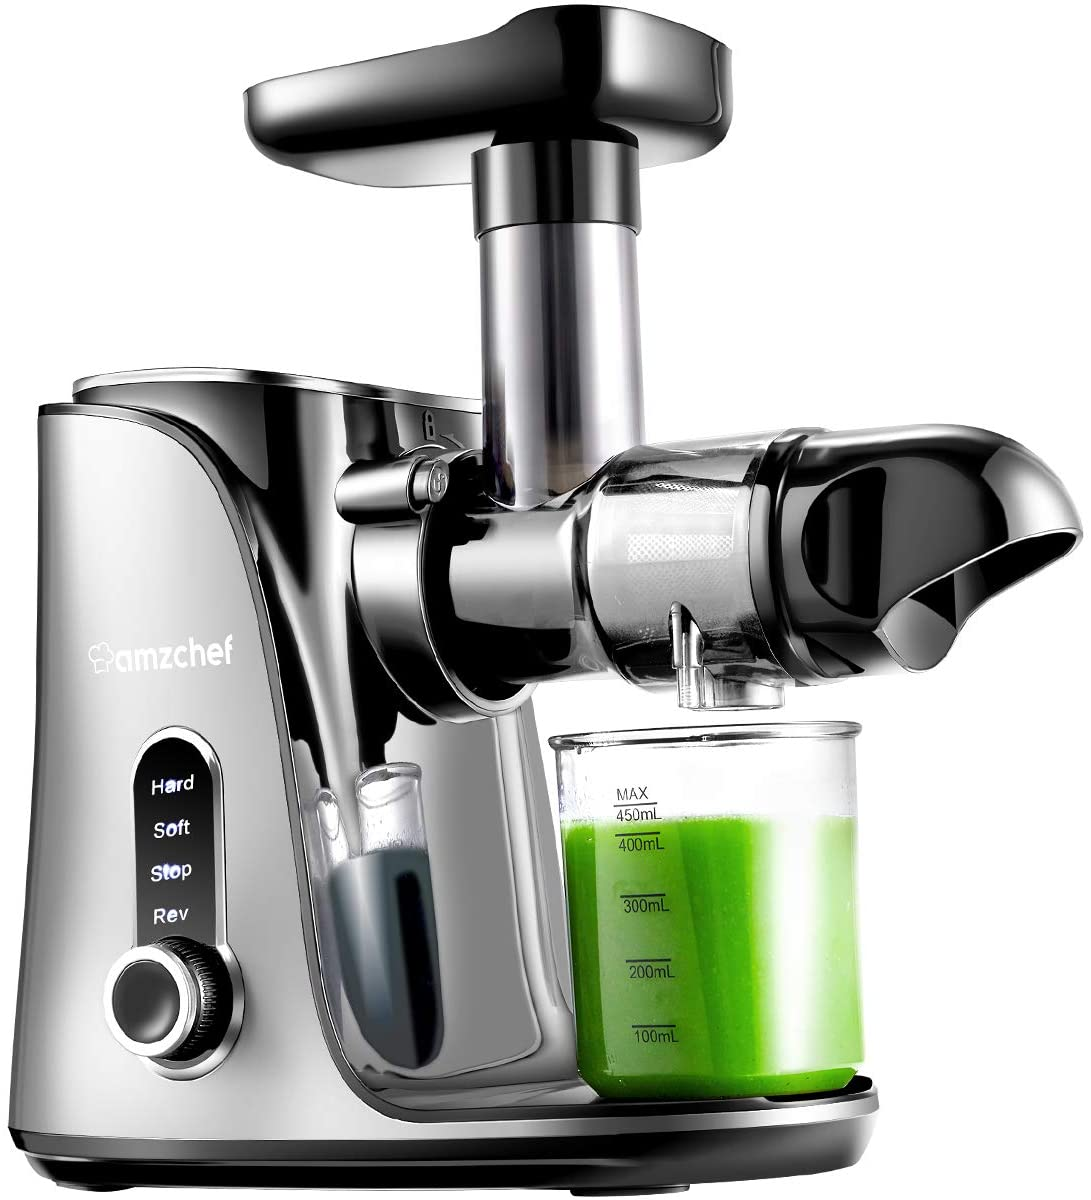 Review of AMZCHEF Slow Masticating Cold Press Juicer